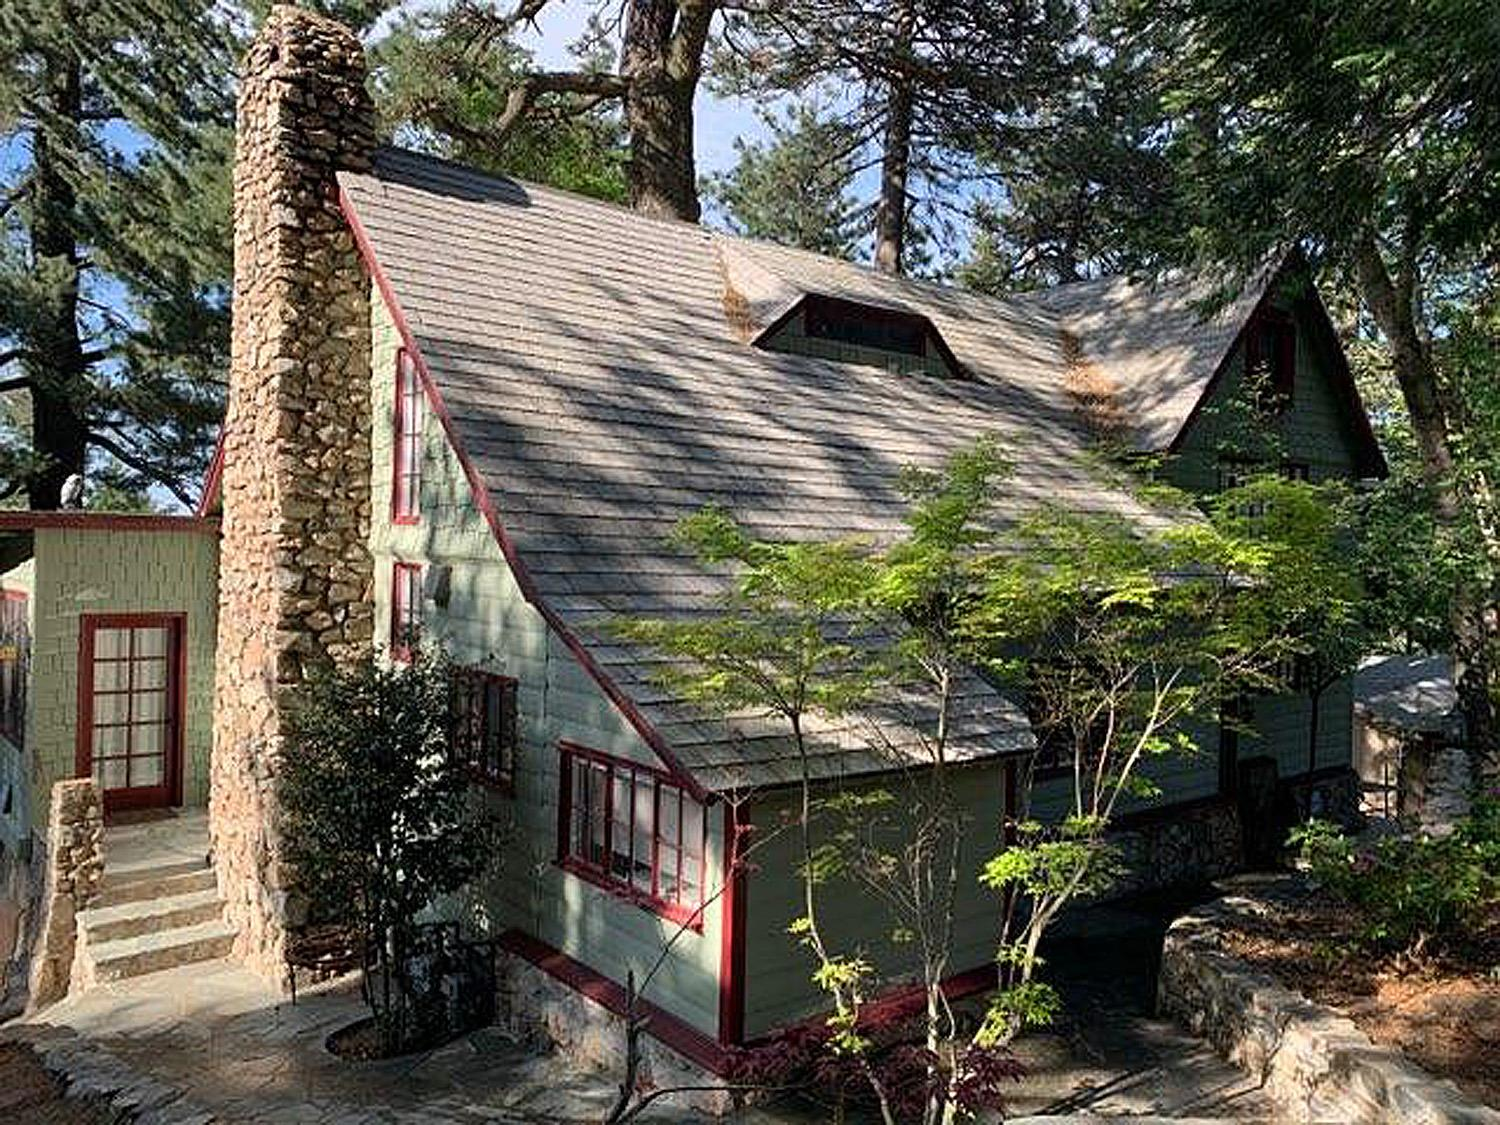 949 Playground Drive Property Photo - Crestline, CA real estate listing